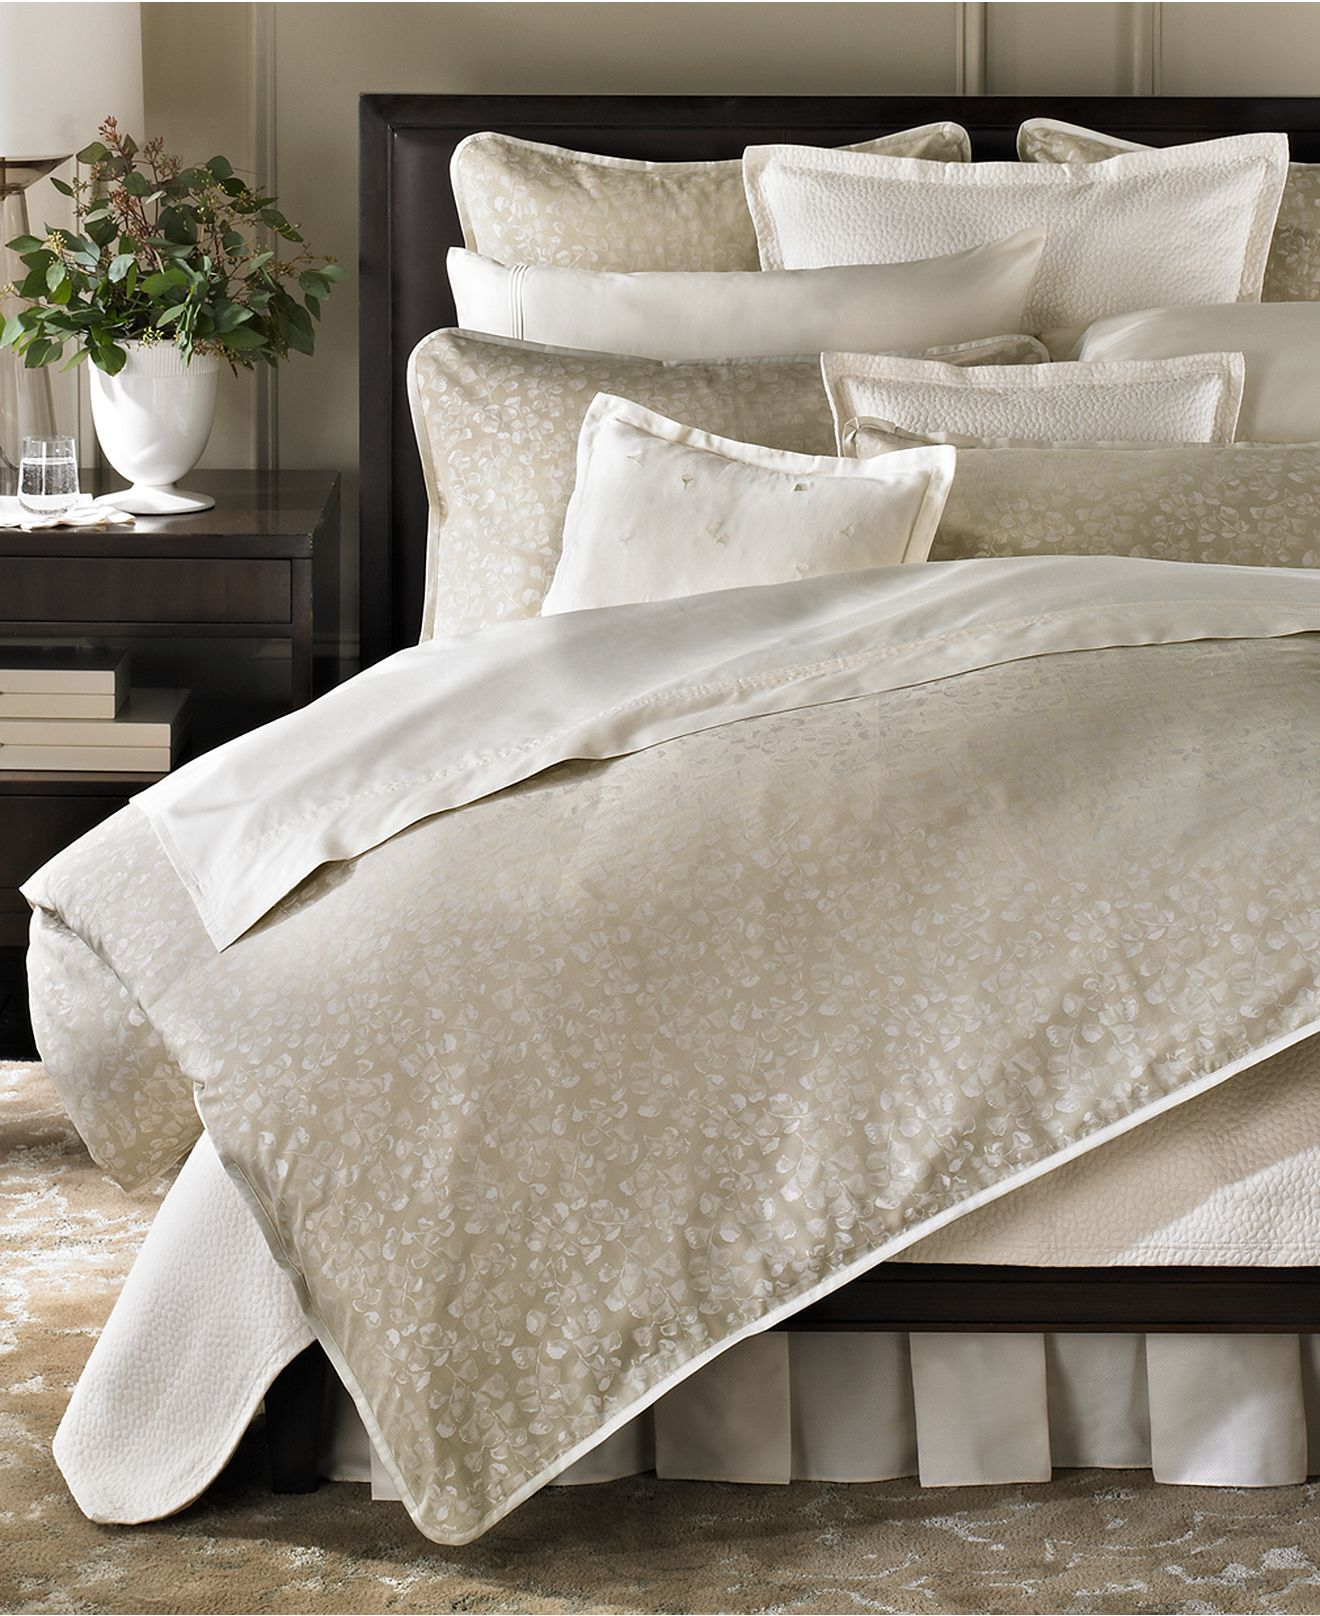 Barbara Barry Bedding Fern Canopy Collection Bedding